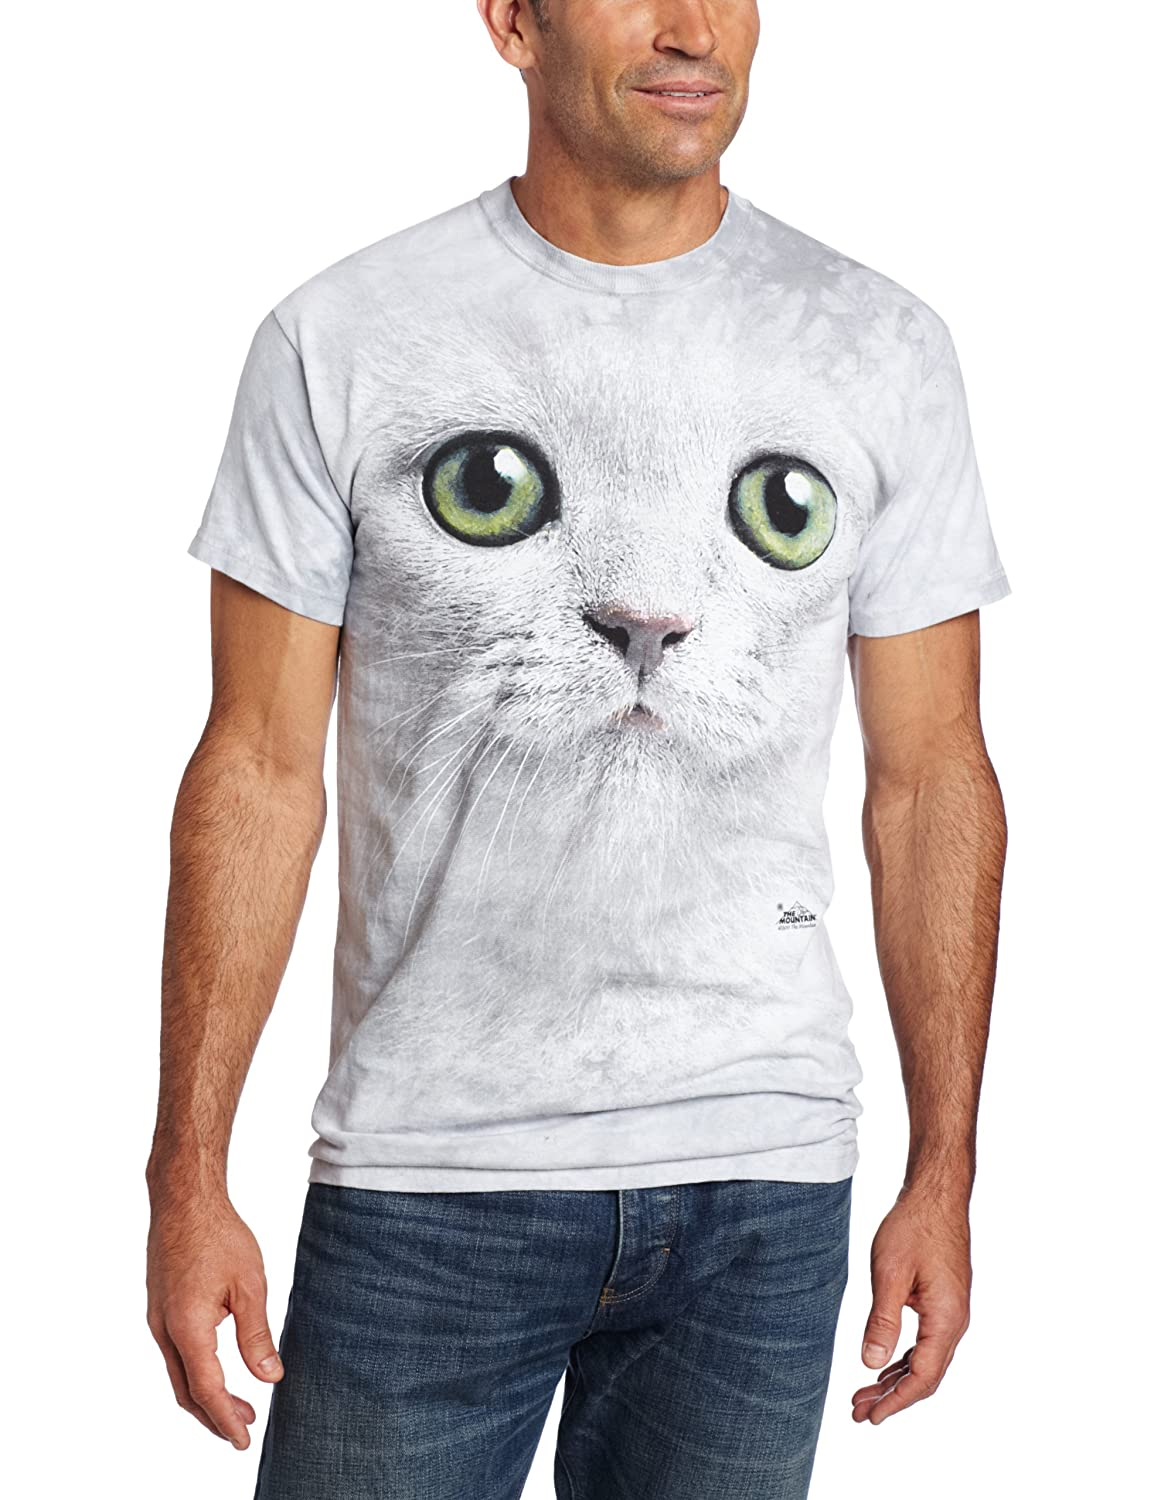 0f9446e46faf Amazon.com: The Mountain Men's Green Eyes Face T-Shirt, Off-White: Clothing